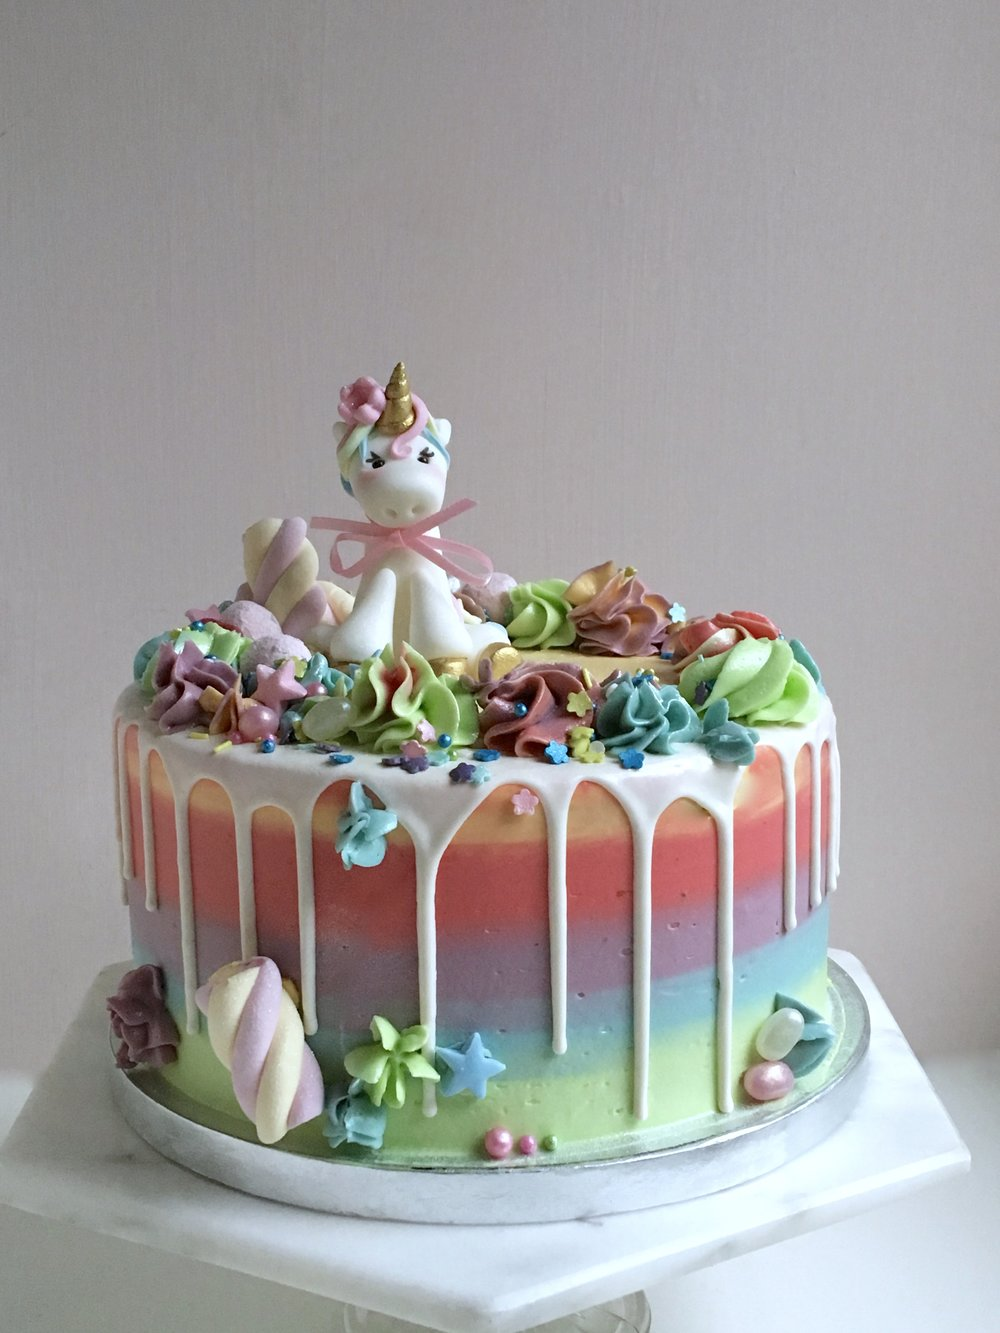 Pastel Unicorn cake by Yolk www.cakesbyyolk.com